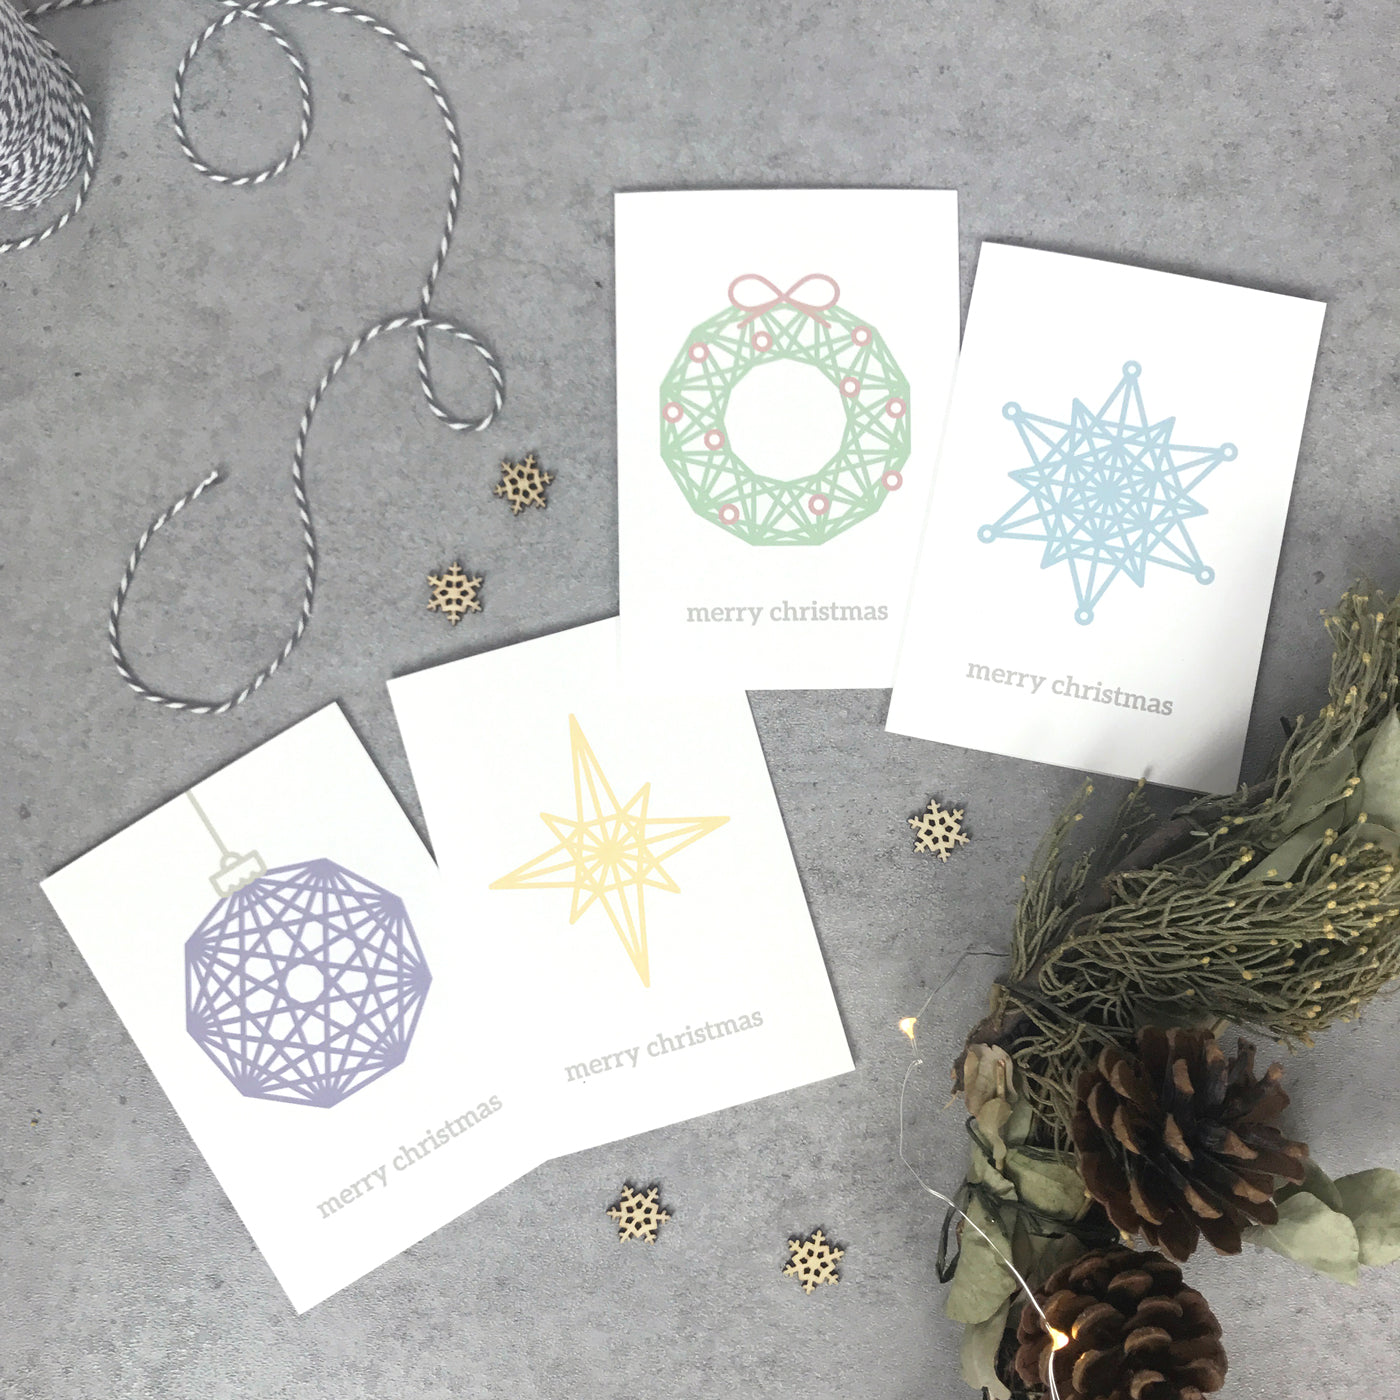 Modern Christmas cards (pack of 4): snowflake, wreath, bauble, star